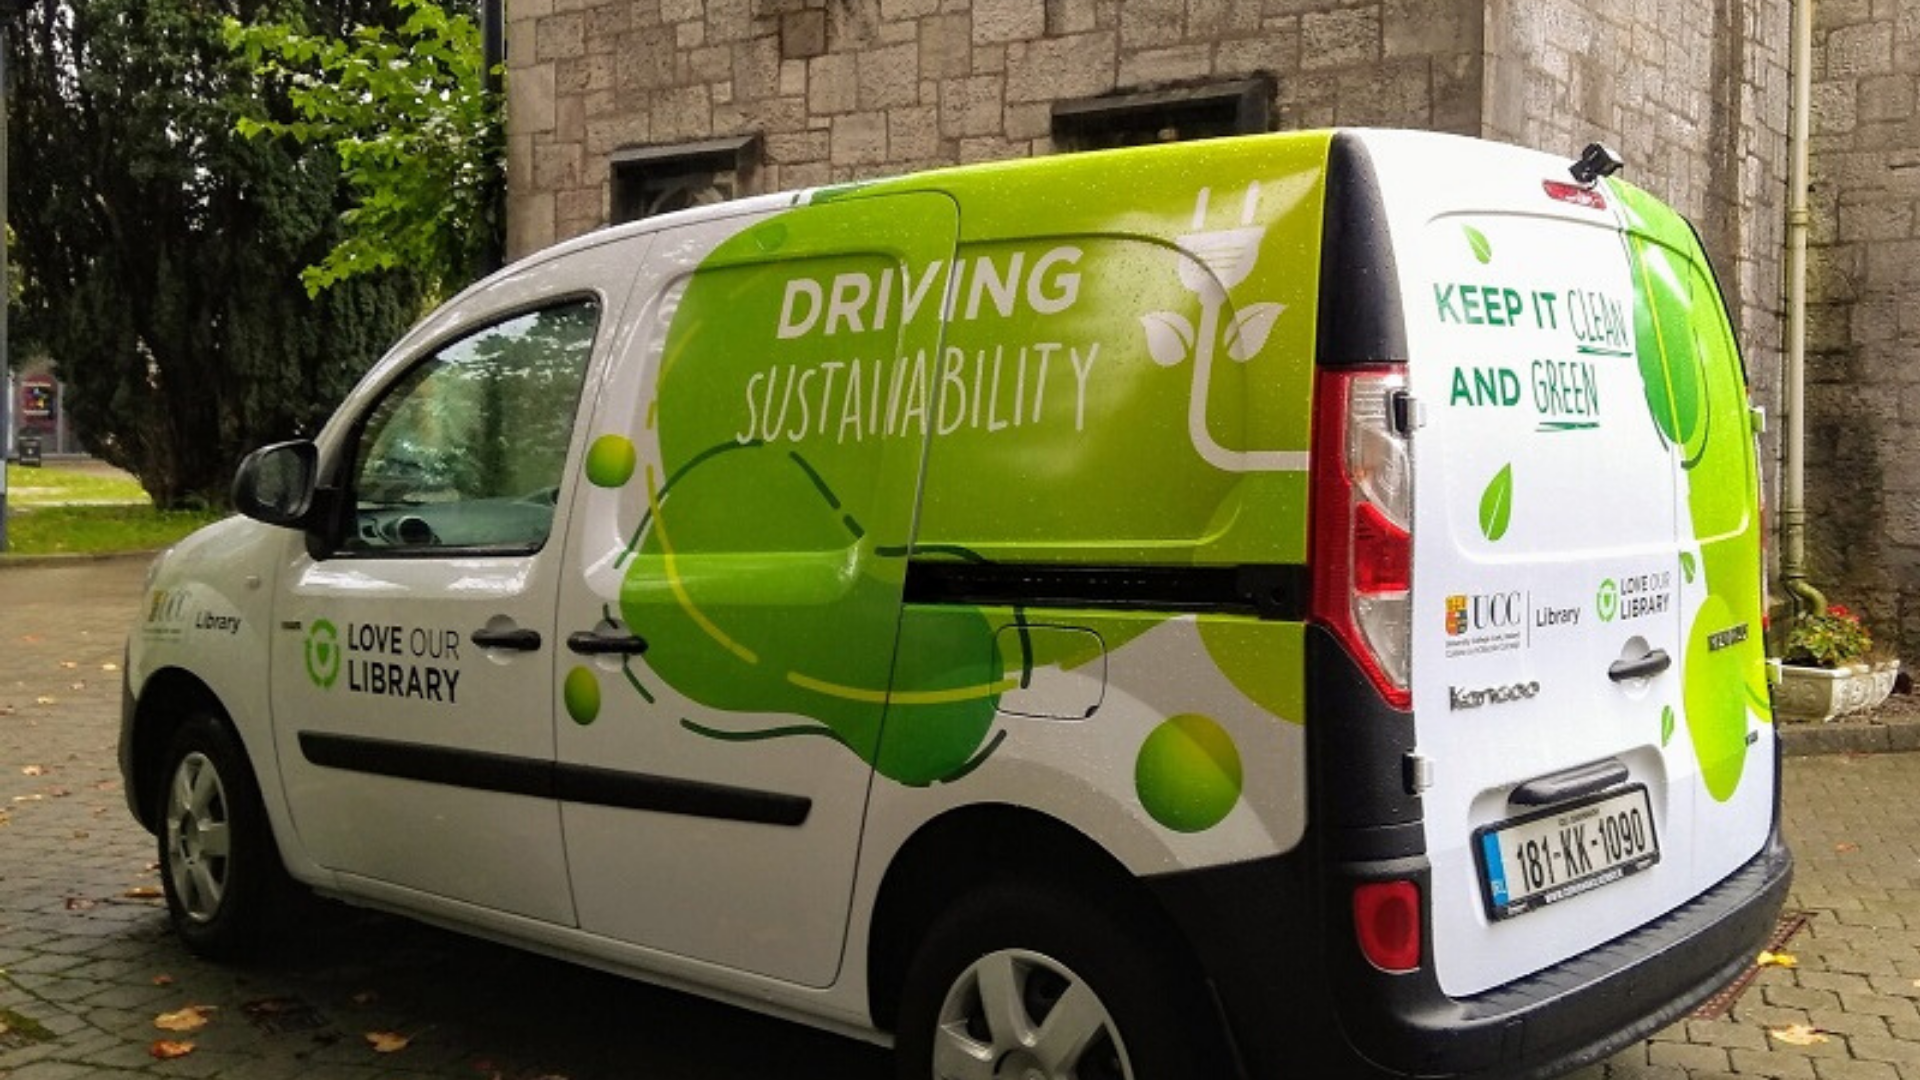 library van with green graphics and